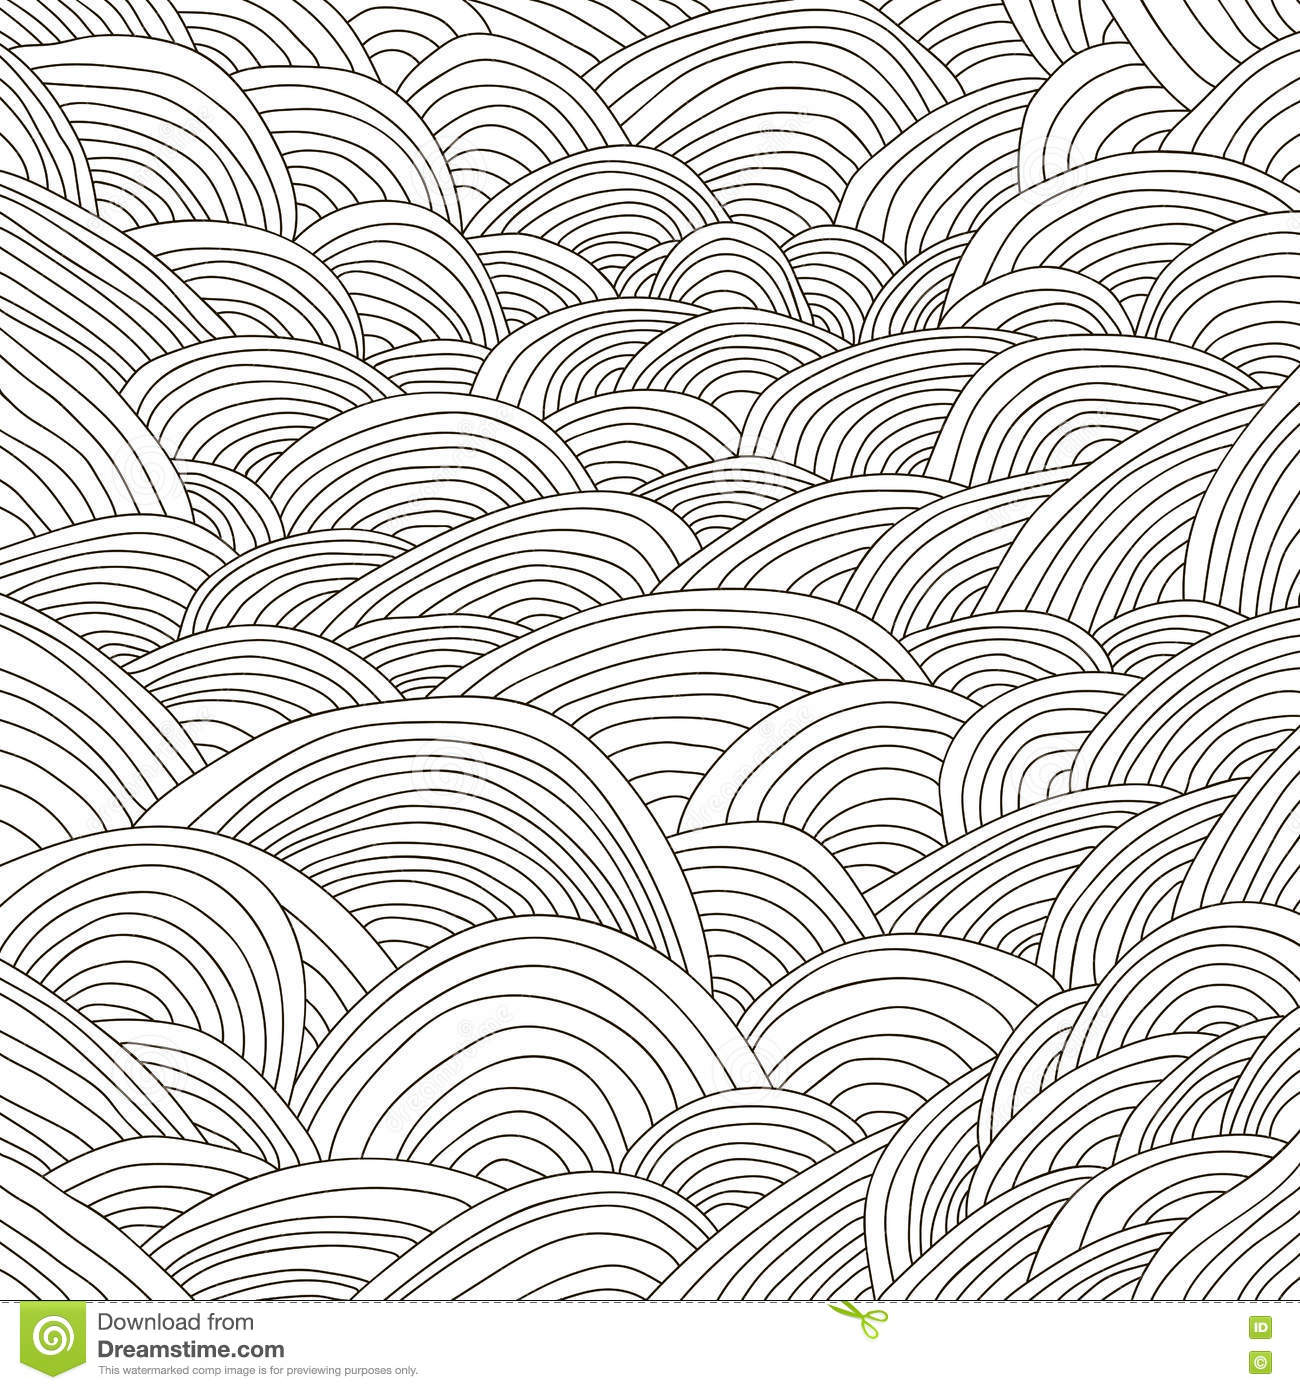 Line Drawing Backgrounds : Hand draw black and white lines background stock